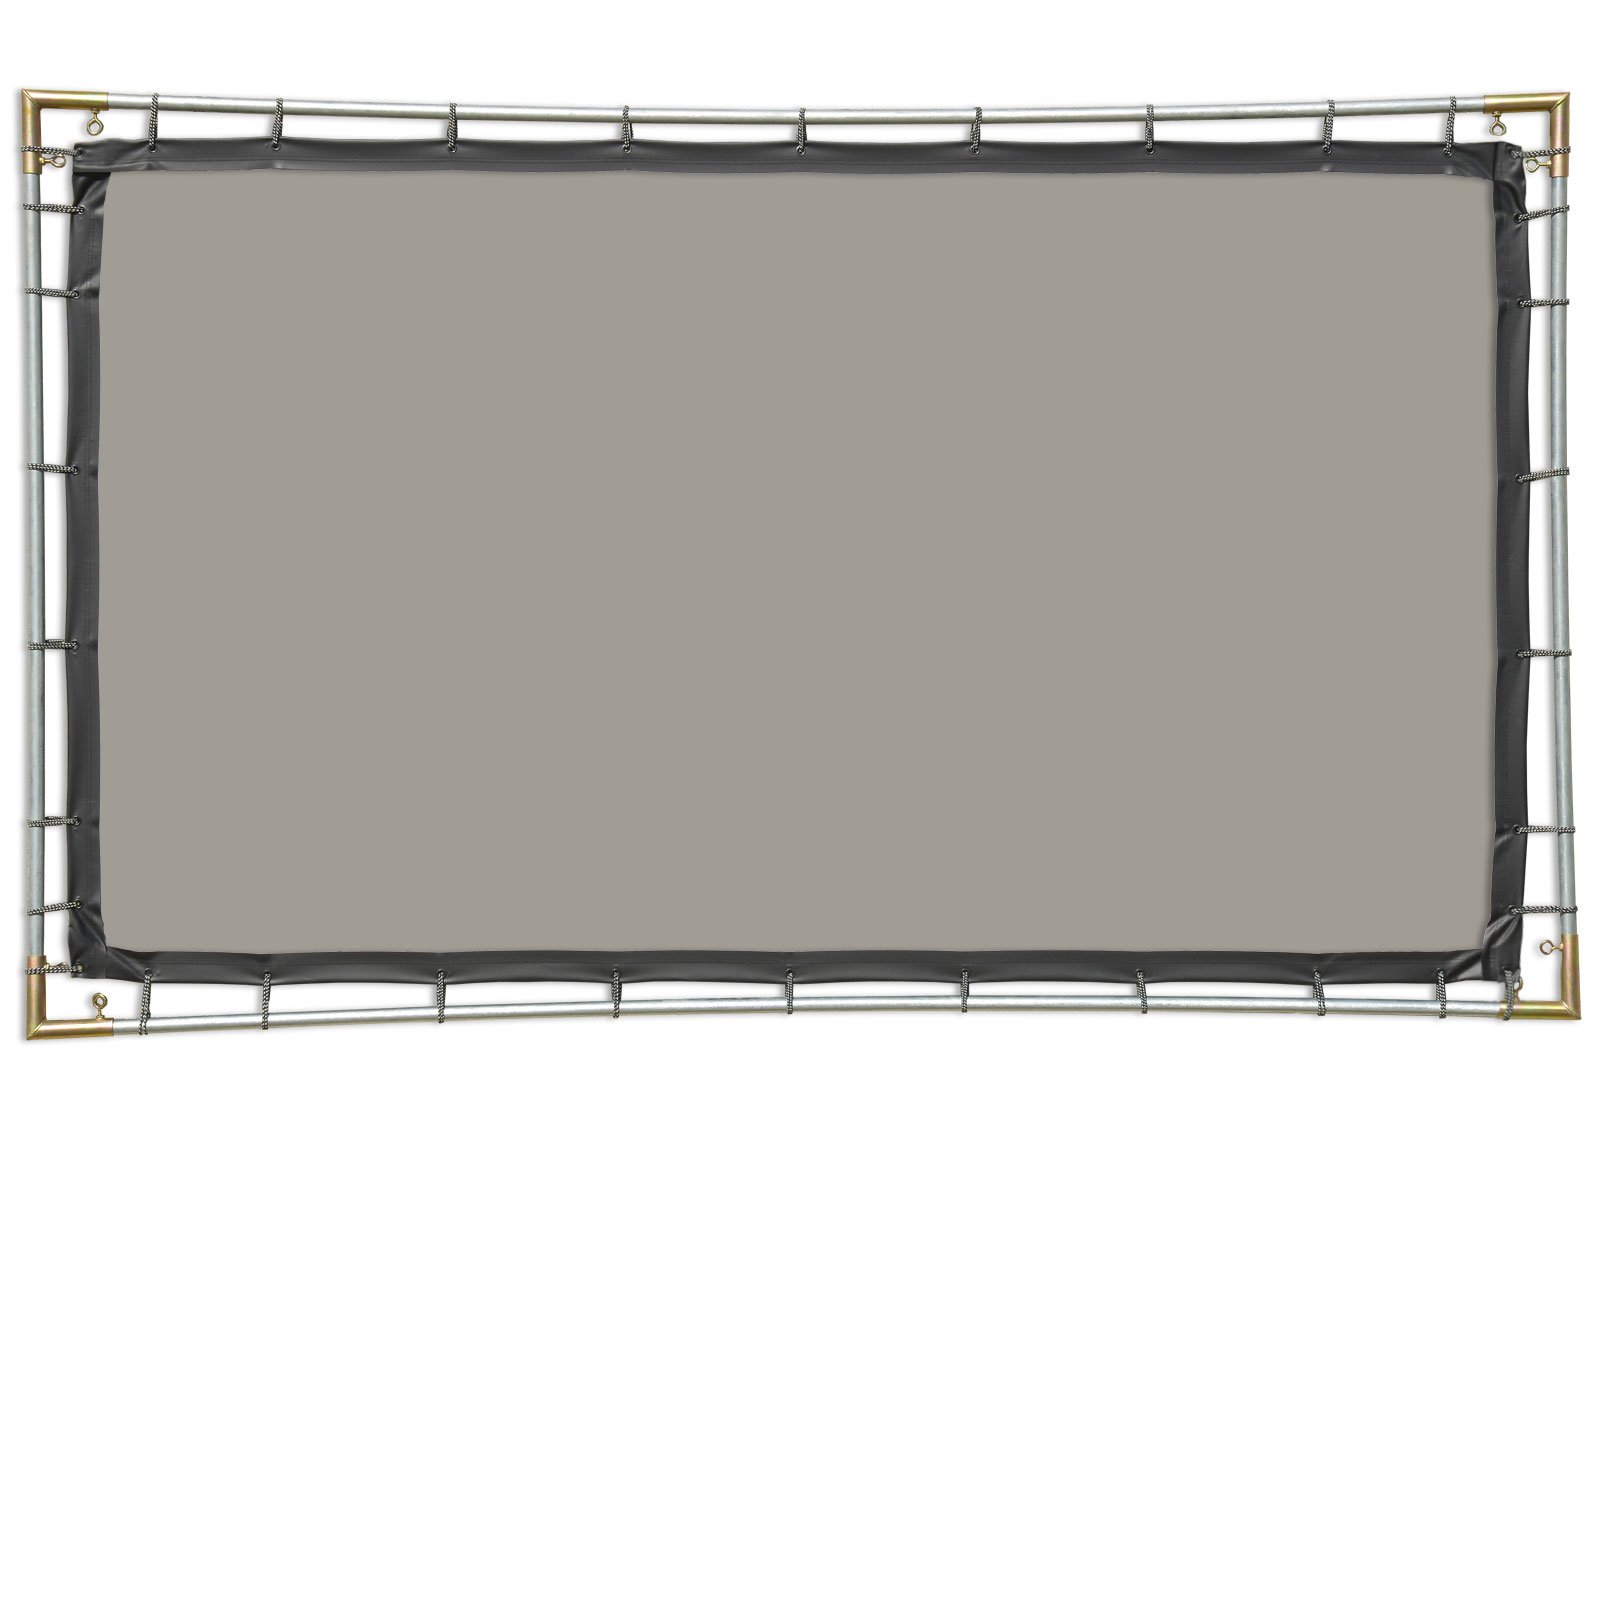 Carl's (4:3) 6.75x9 Ft Gray Rear Projection Hanging Kit (Window Projection Material for Halloween Digital Decorations) by Carls Place